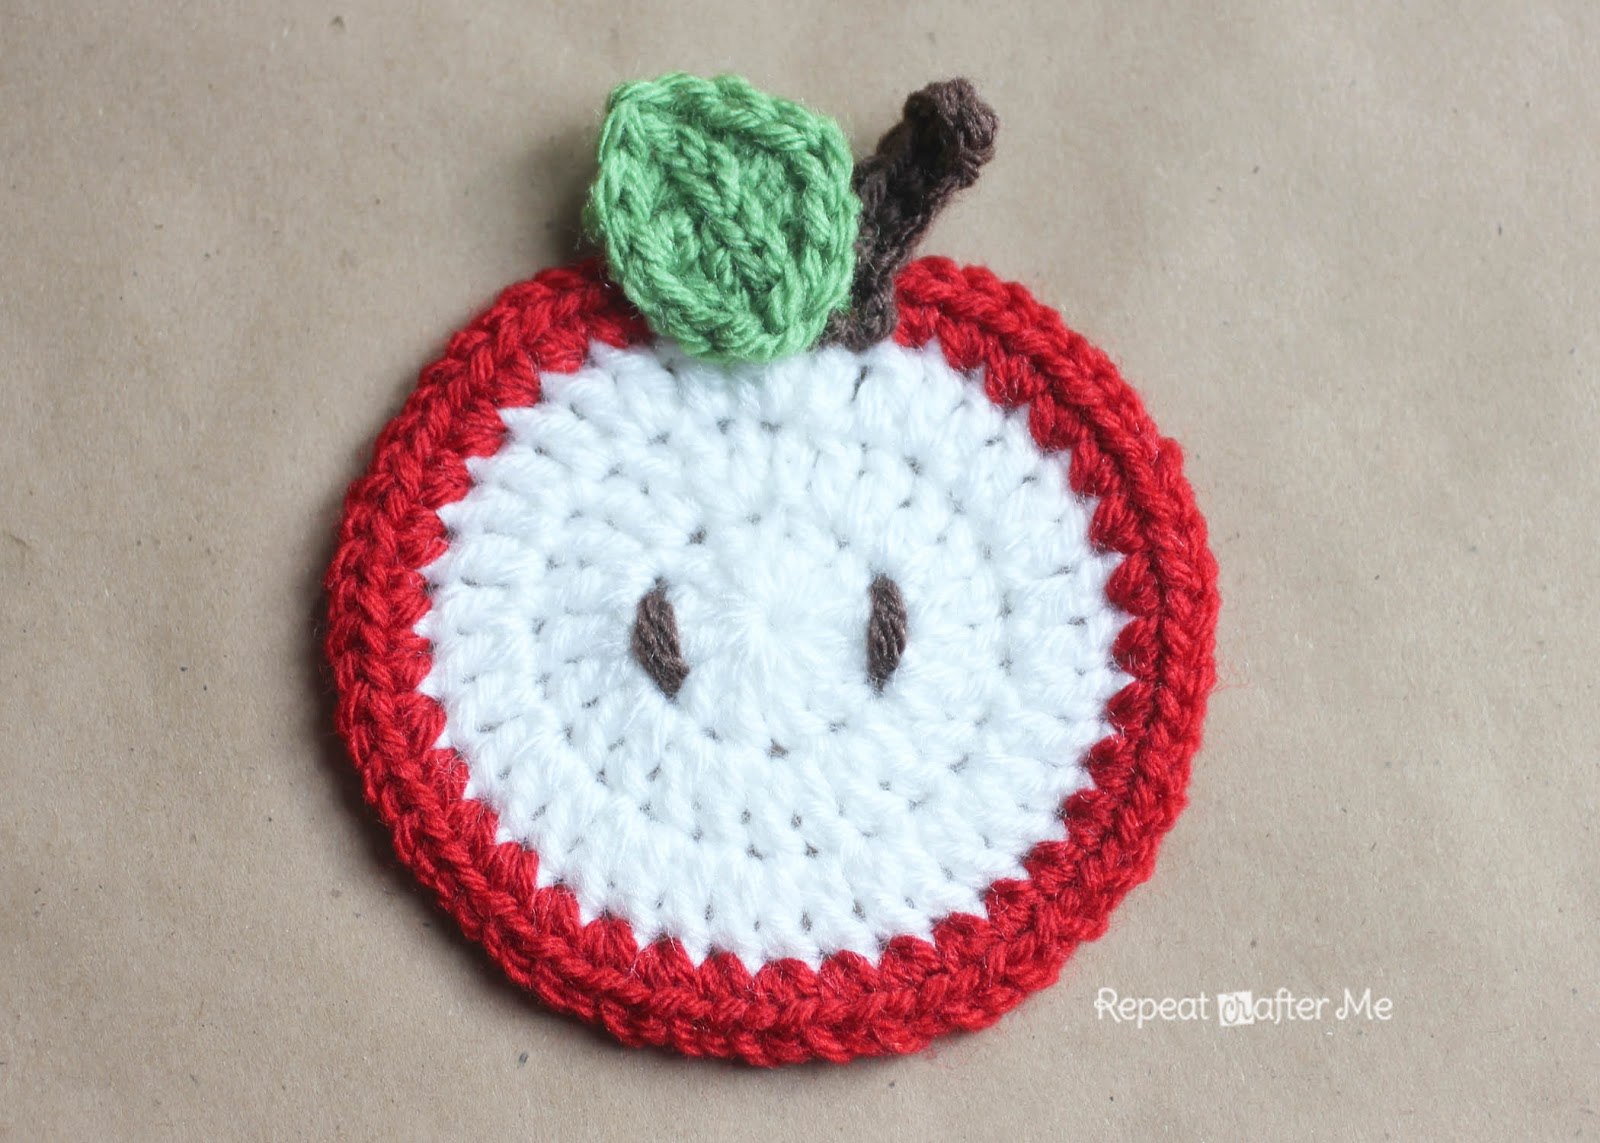 Crochet fruit coasters pattern repeat crafter me crochet fruit coasters pattern bankloansurffo Choice Image